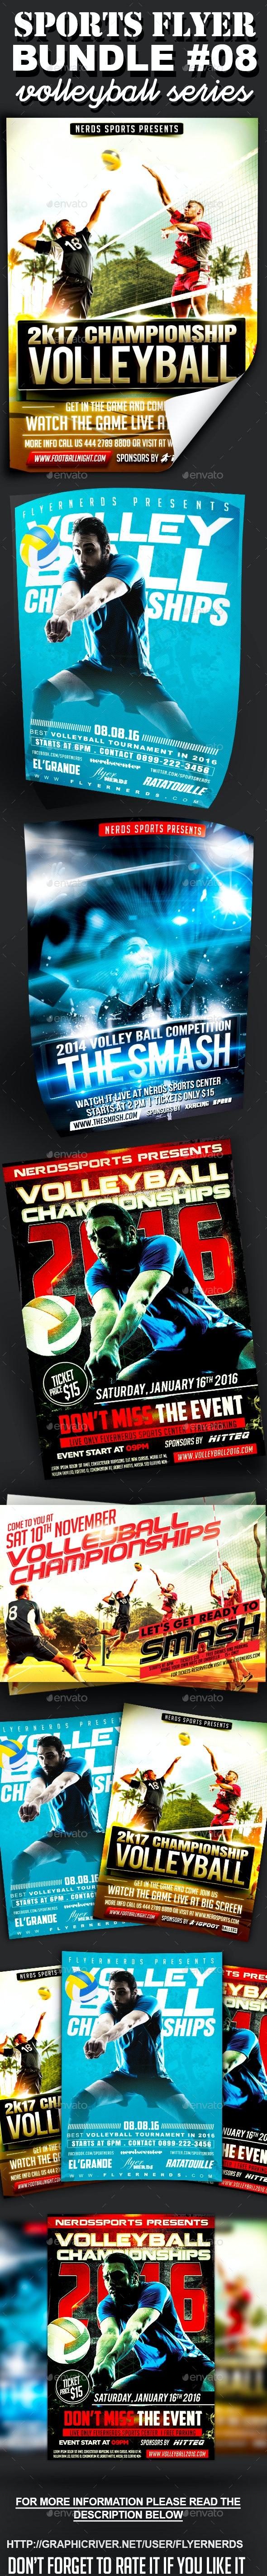 Sports Flyer Bundle 08 Volleyball Series - Sports Events